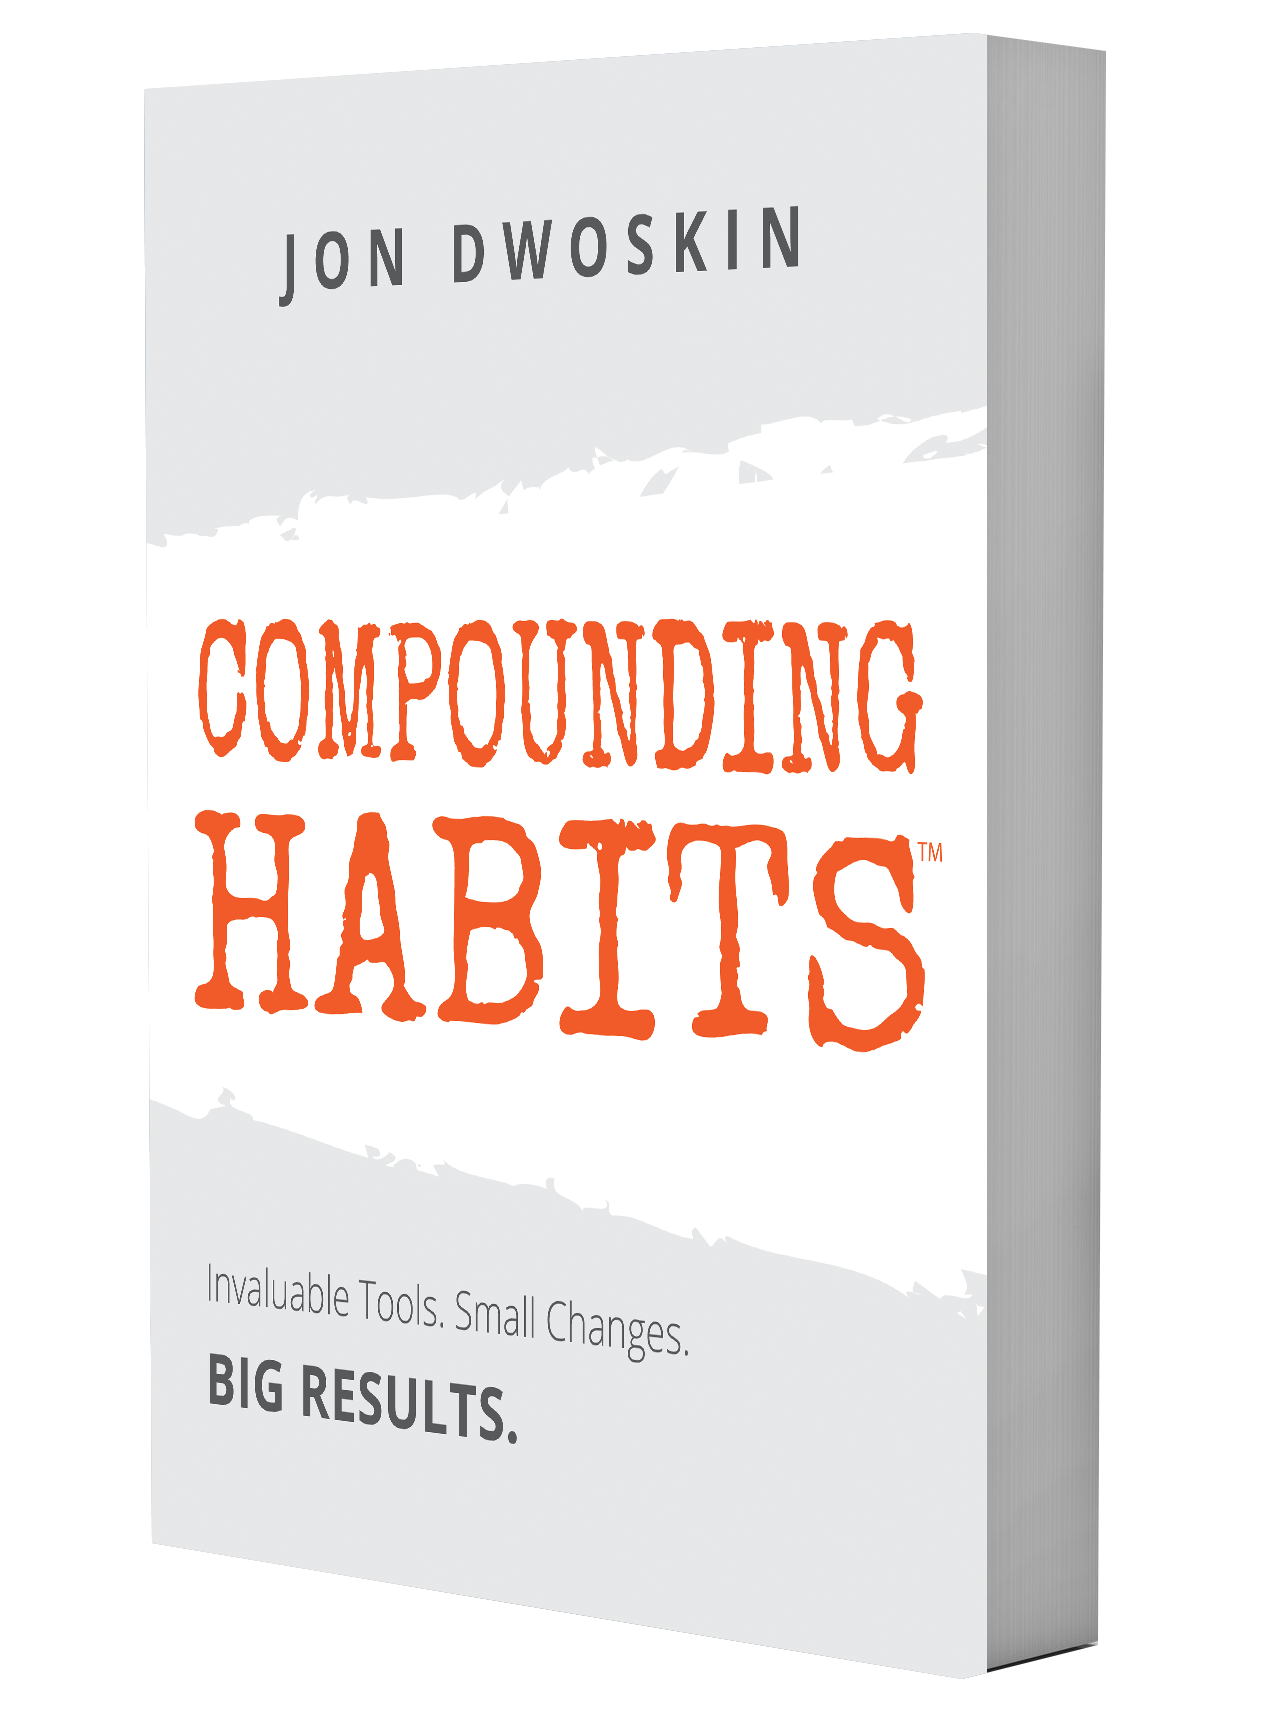 Compounding Habits Book Cover